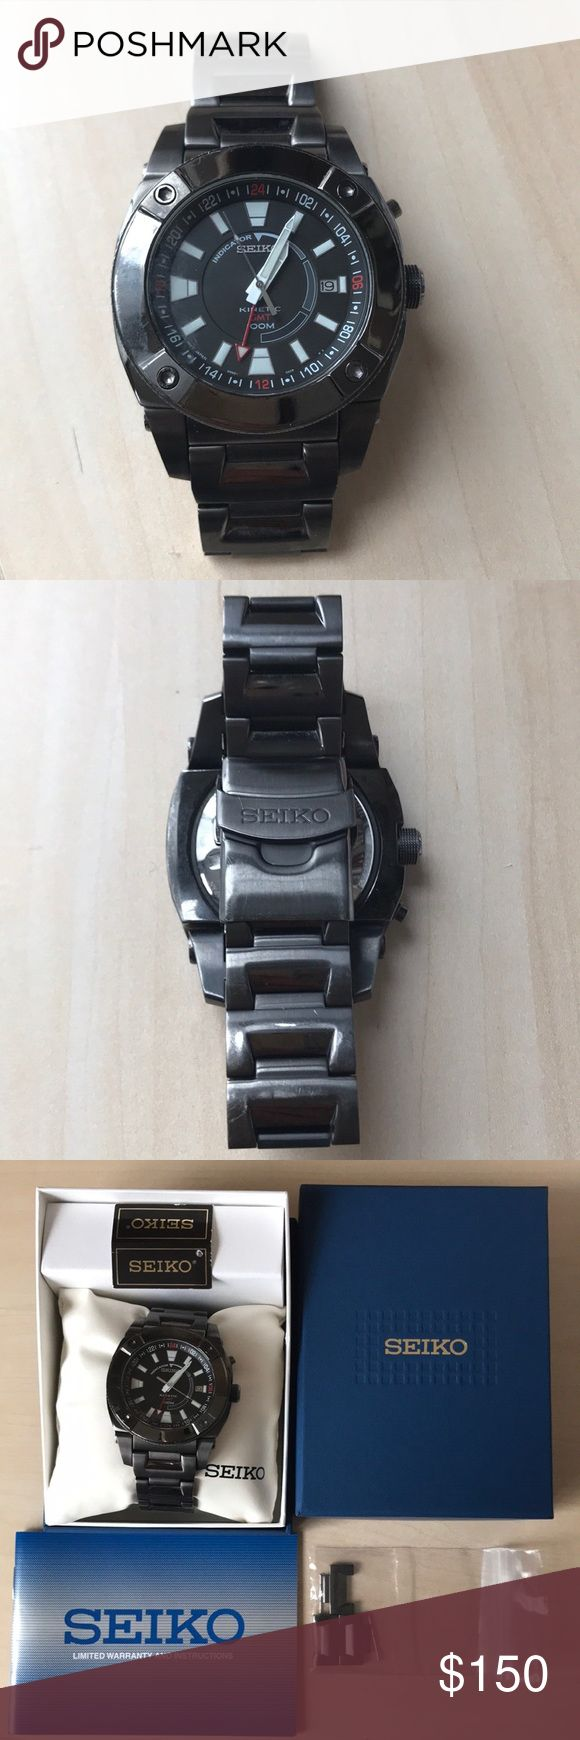 SEIKO Men's SUN007 Kinetic GMT Black Ion Watch Gently used, Kinetic movement, function without battery, powers with the movement of your arm, Strong Hardlex crystal protects dial from scratches, Case diameter 45.5mm, Stainless steel case, Black dial with date function, Water resistance to 300 feet (100 M), Screwdown see thru caseback, Original box and spare bracelet chains included. Seiko Accessories Watches